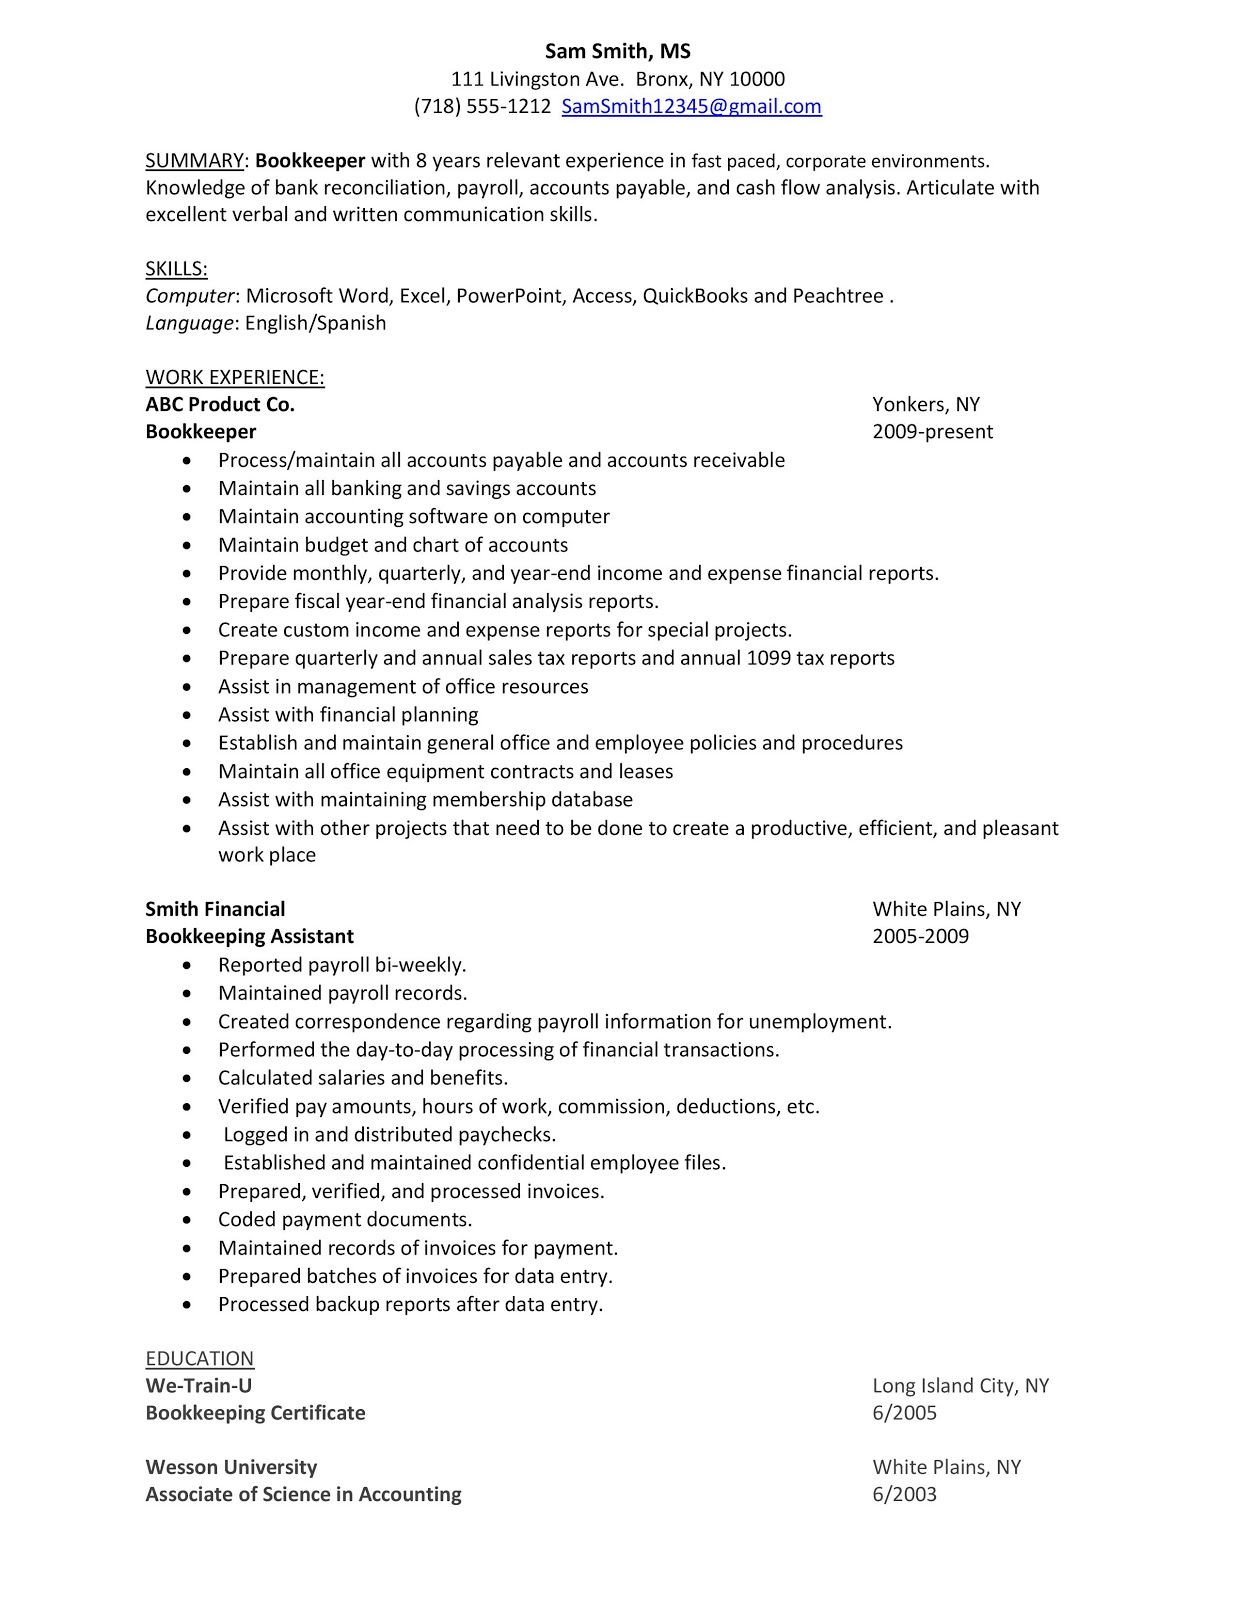 Sample Resume Bookkeeper